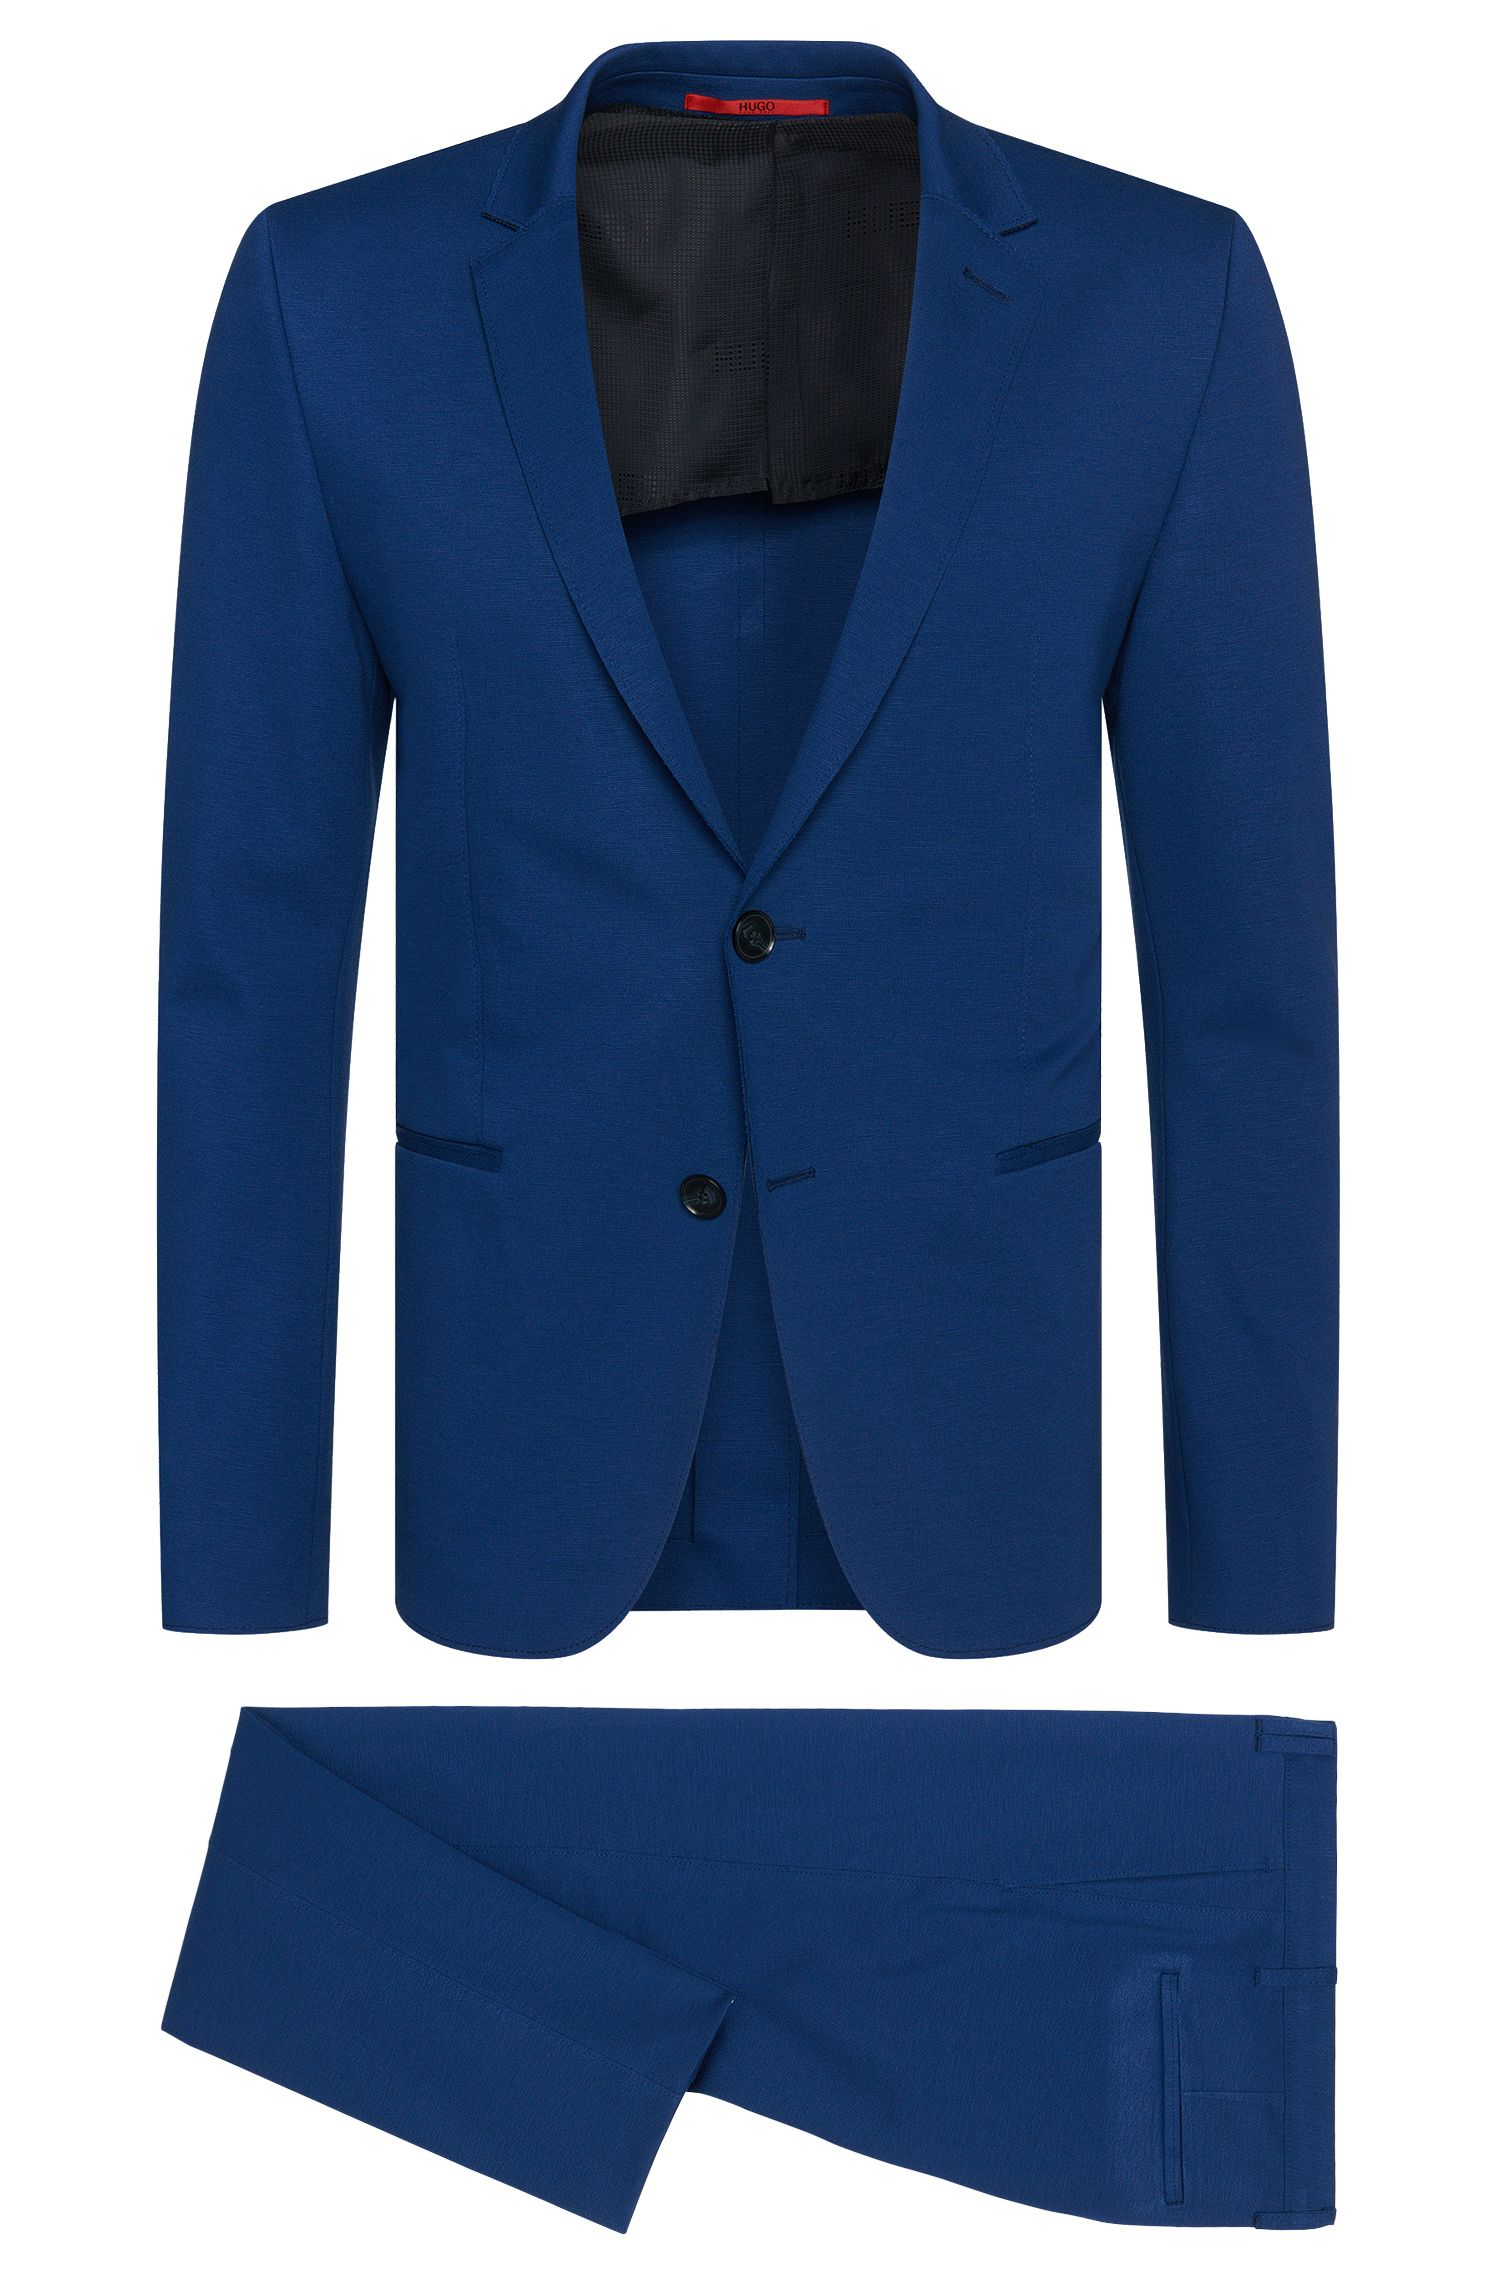 'Arsey/Hyns' | Slim Fit, Viscose Blend Jersey Suit